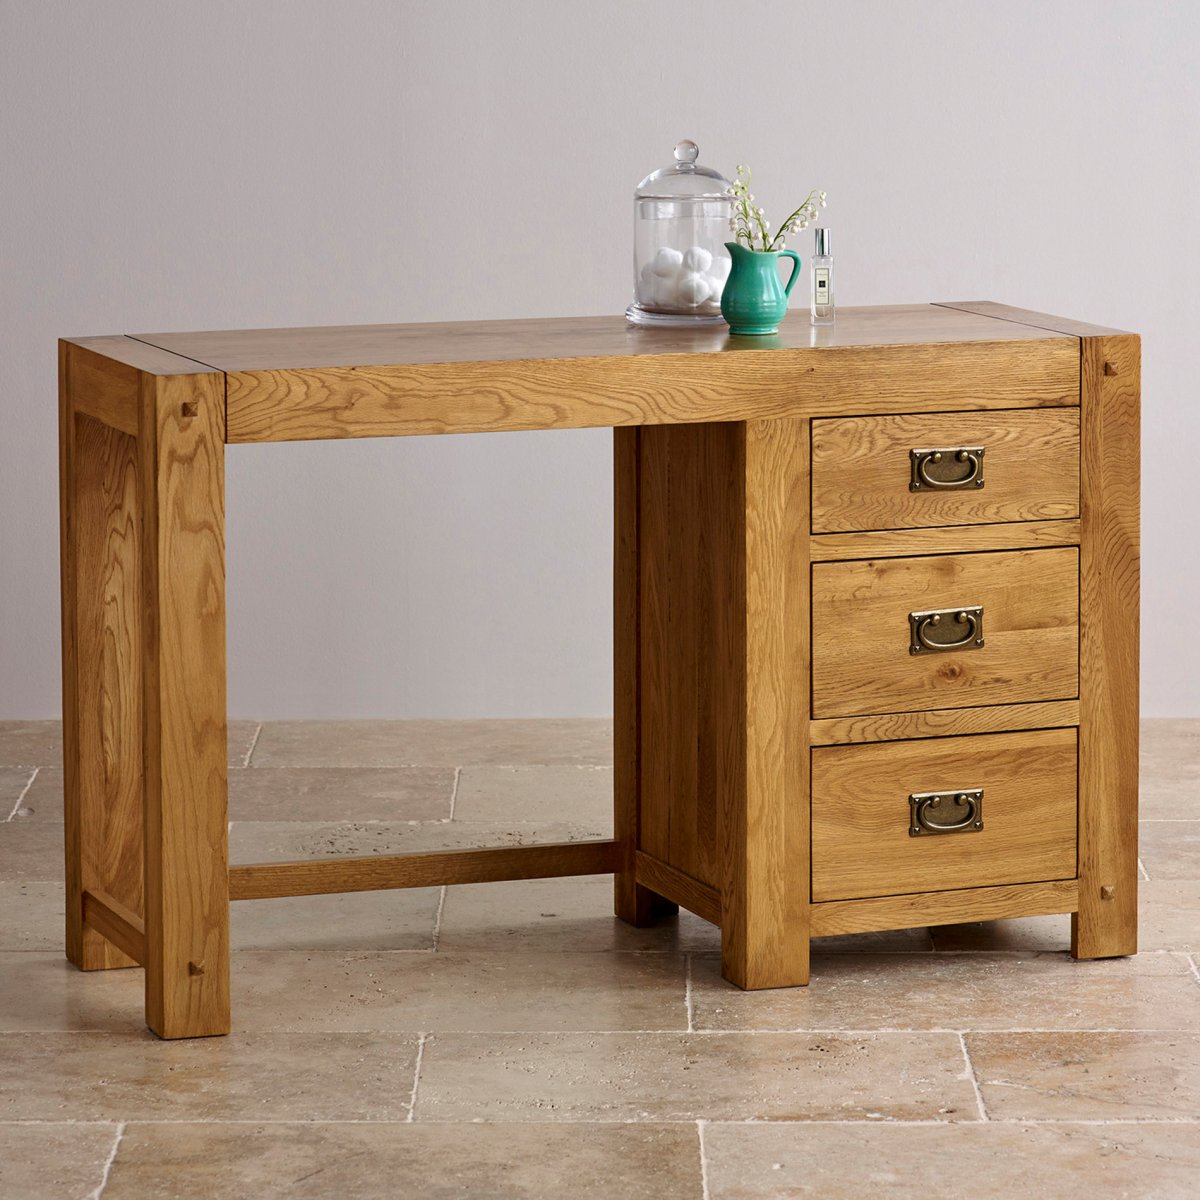 Quercus dressing table in rustic solid oak furniture